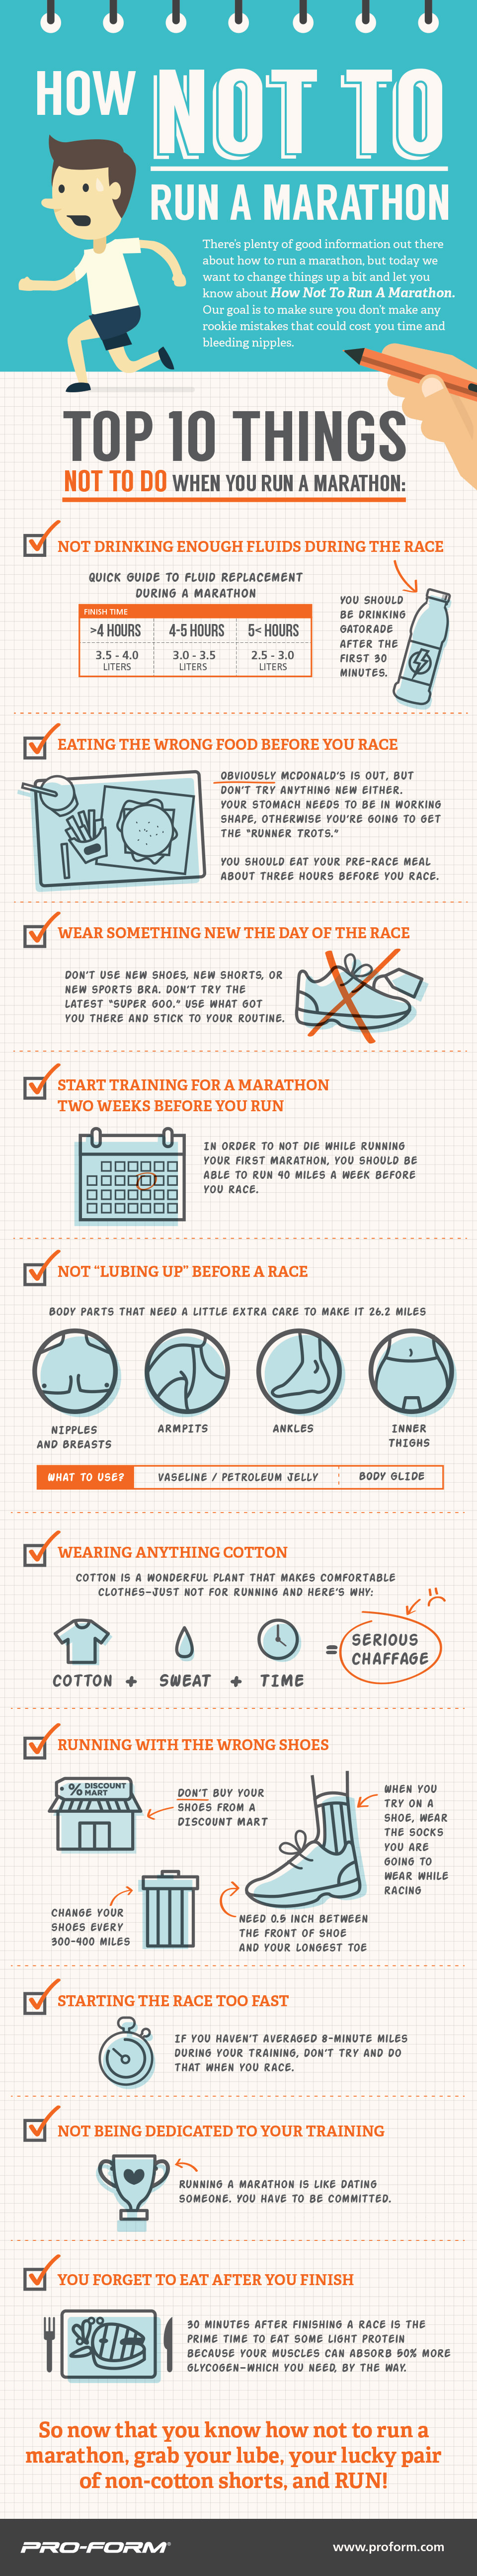 Cotton, Fast Food, and Pace: How NOT to Run a Marathon